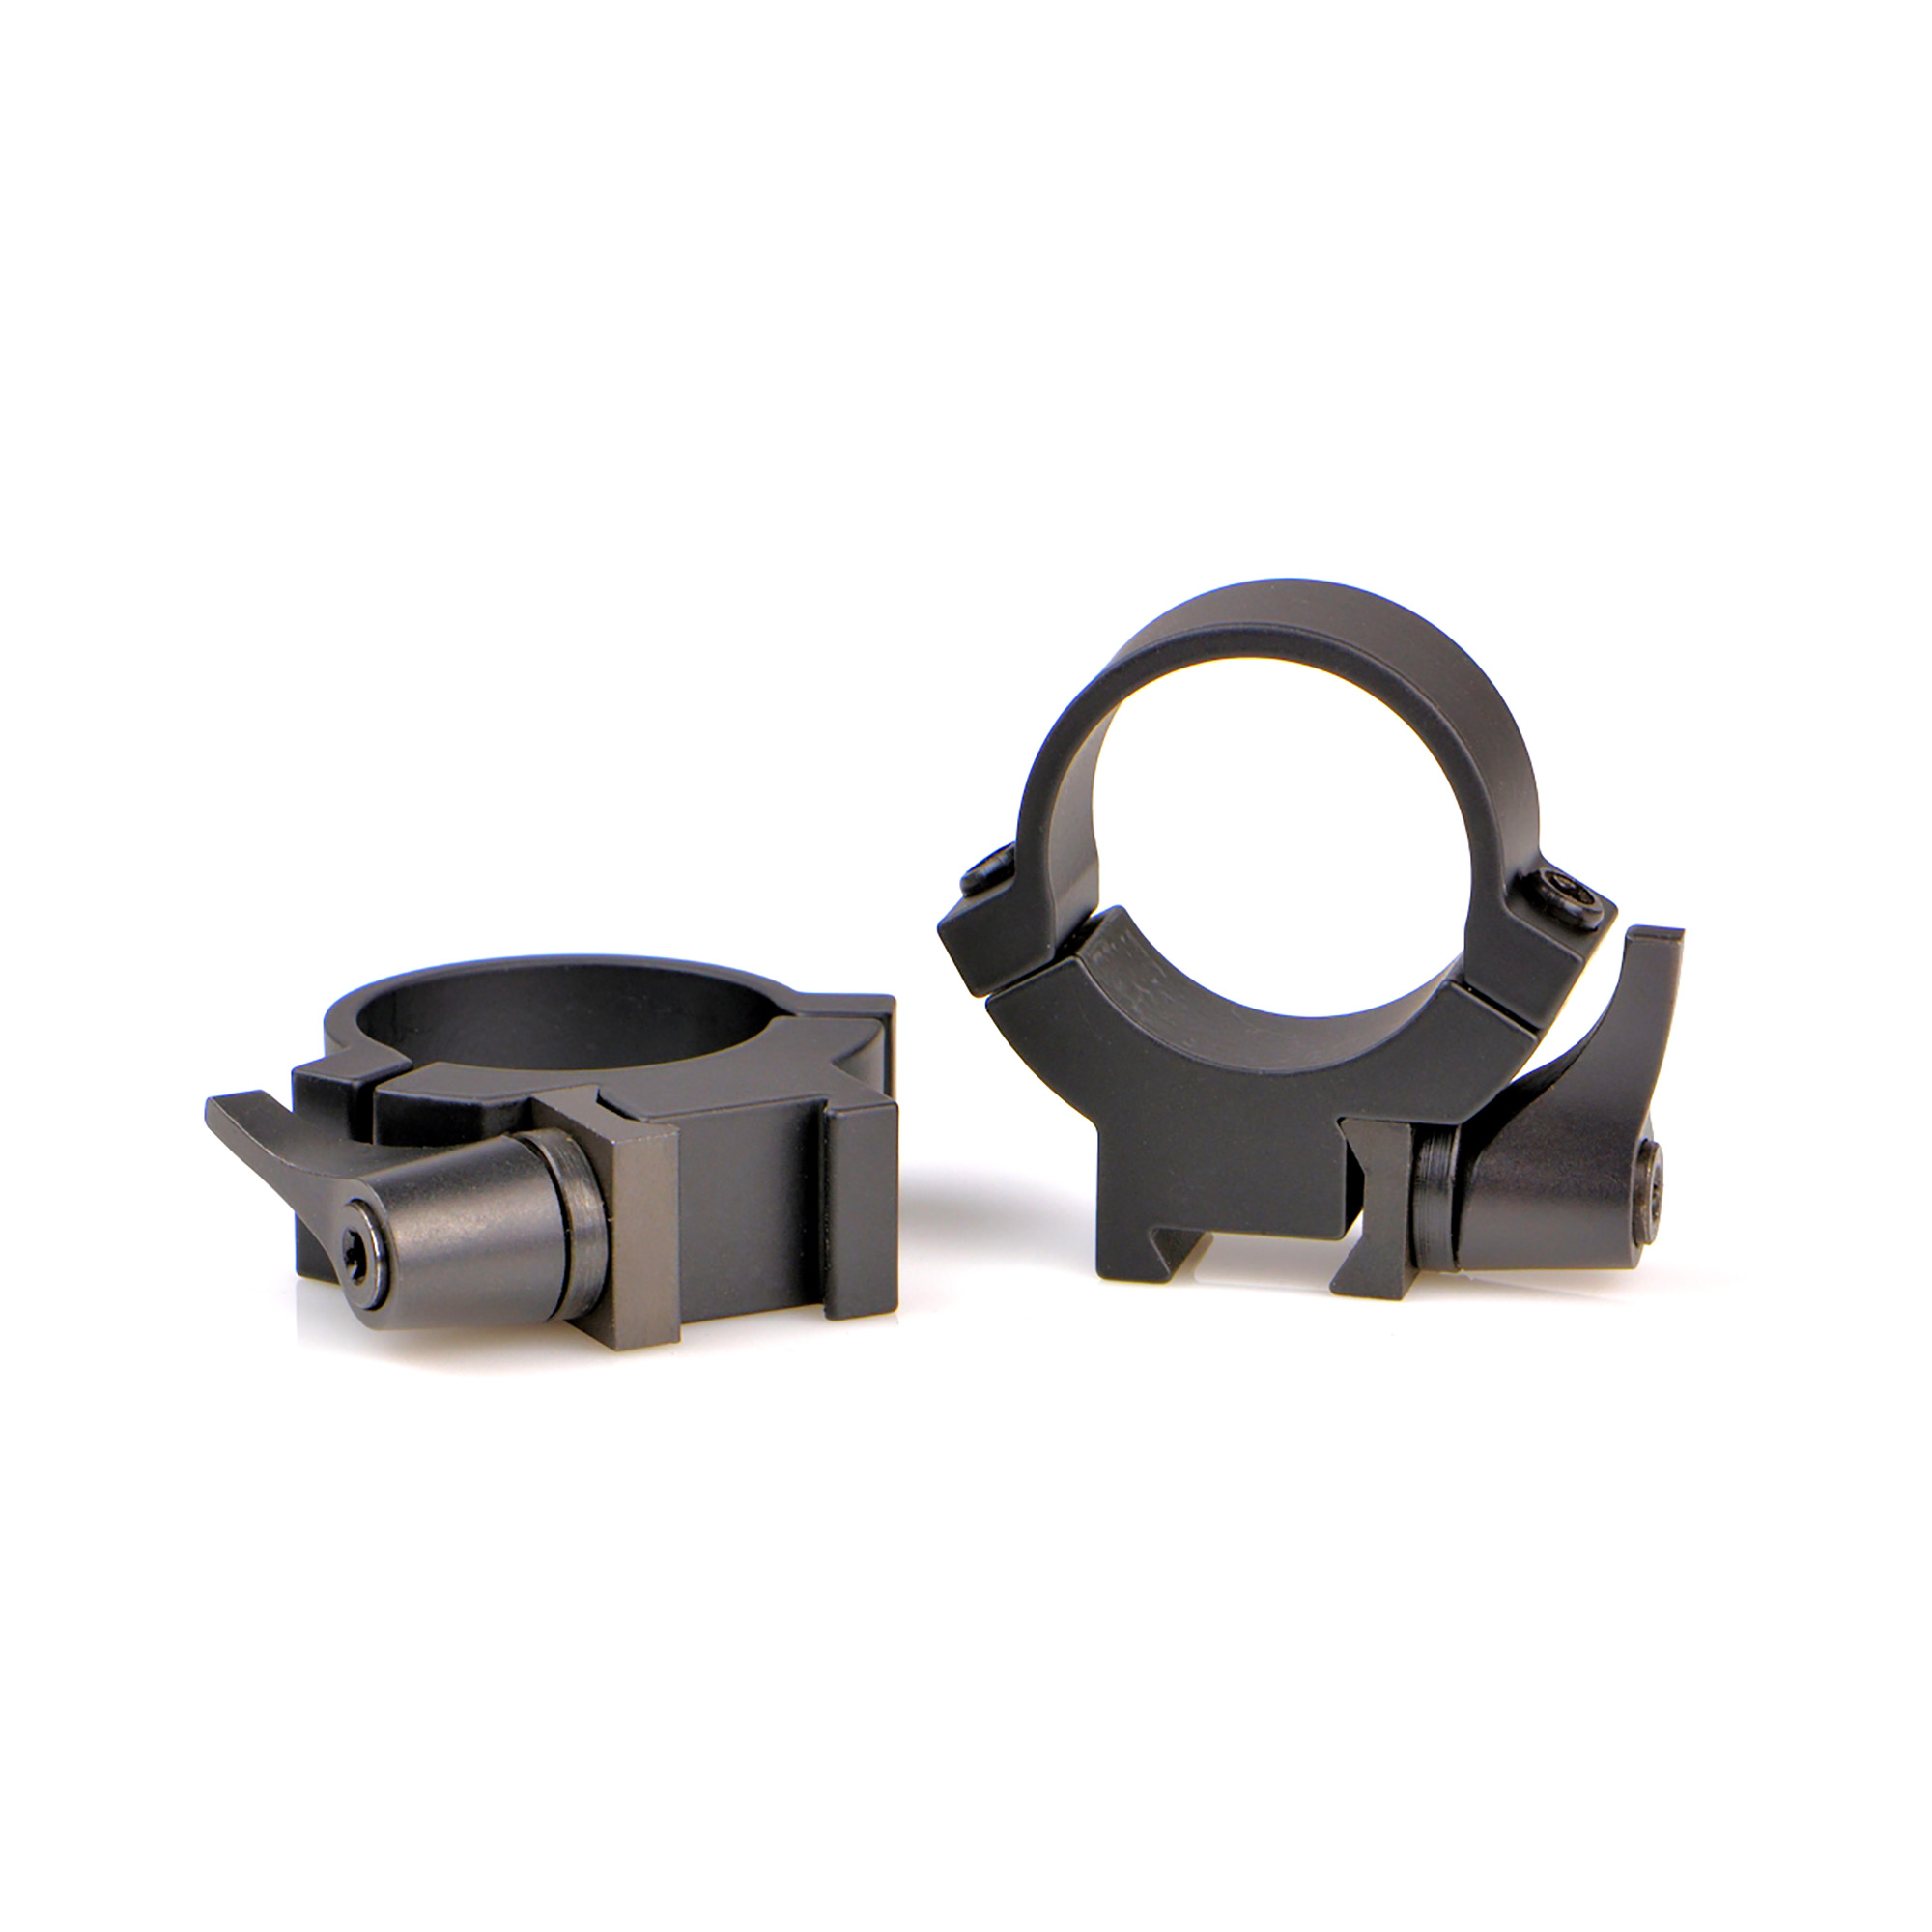 """The Rimfire rings are designed to fit a very wide selection of rifles with either a 3/8"""""""" or 11mm dovetail. This is made possible by using a solid asymmetrical reversible clamp that can be flipped 180 degree and used on wider or narrower dovetails for the best fit."""